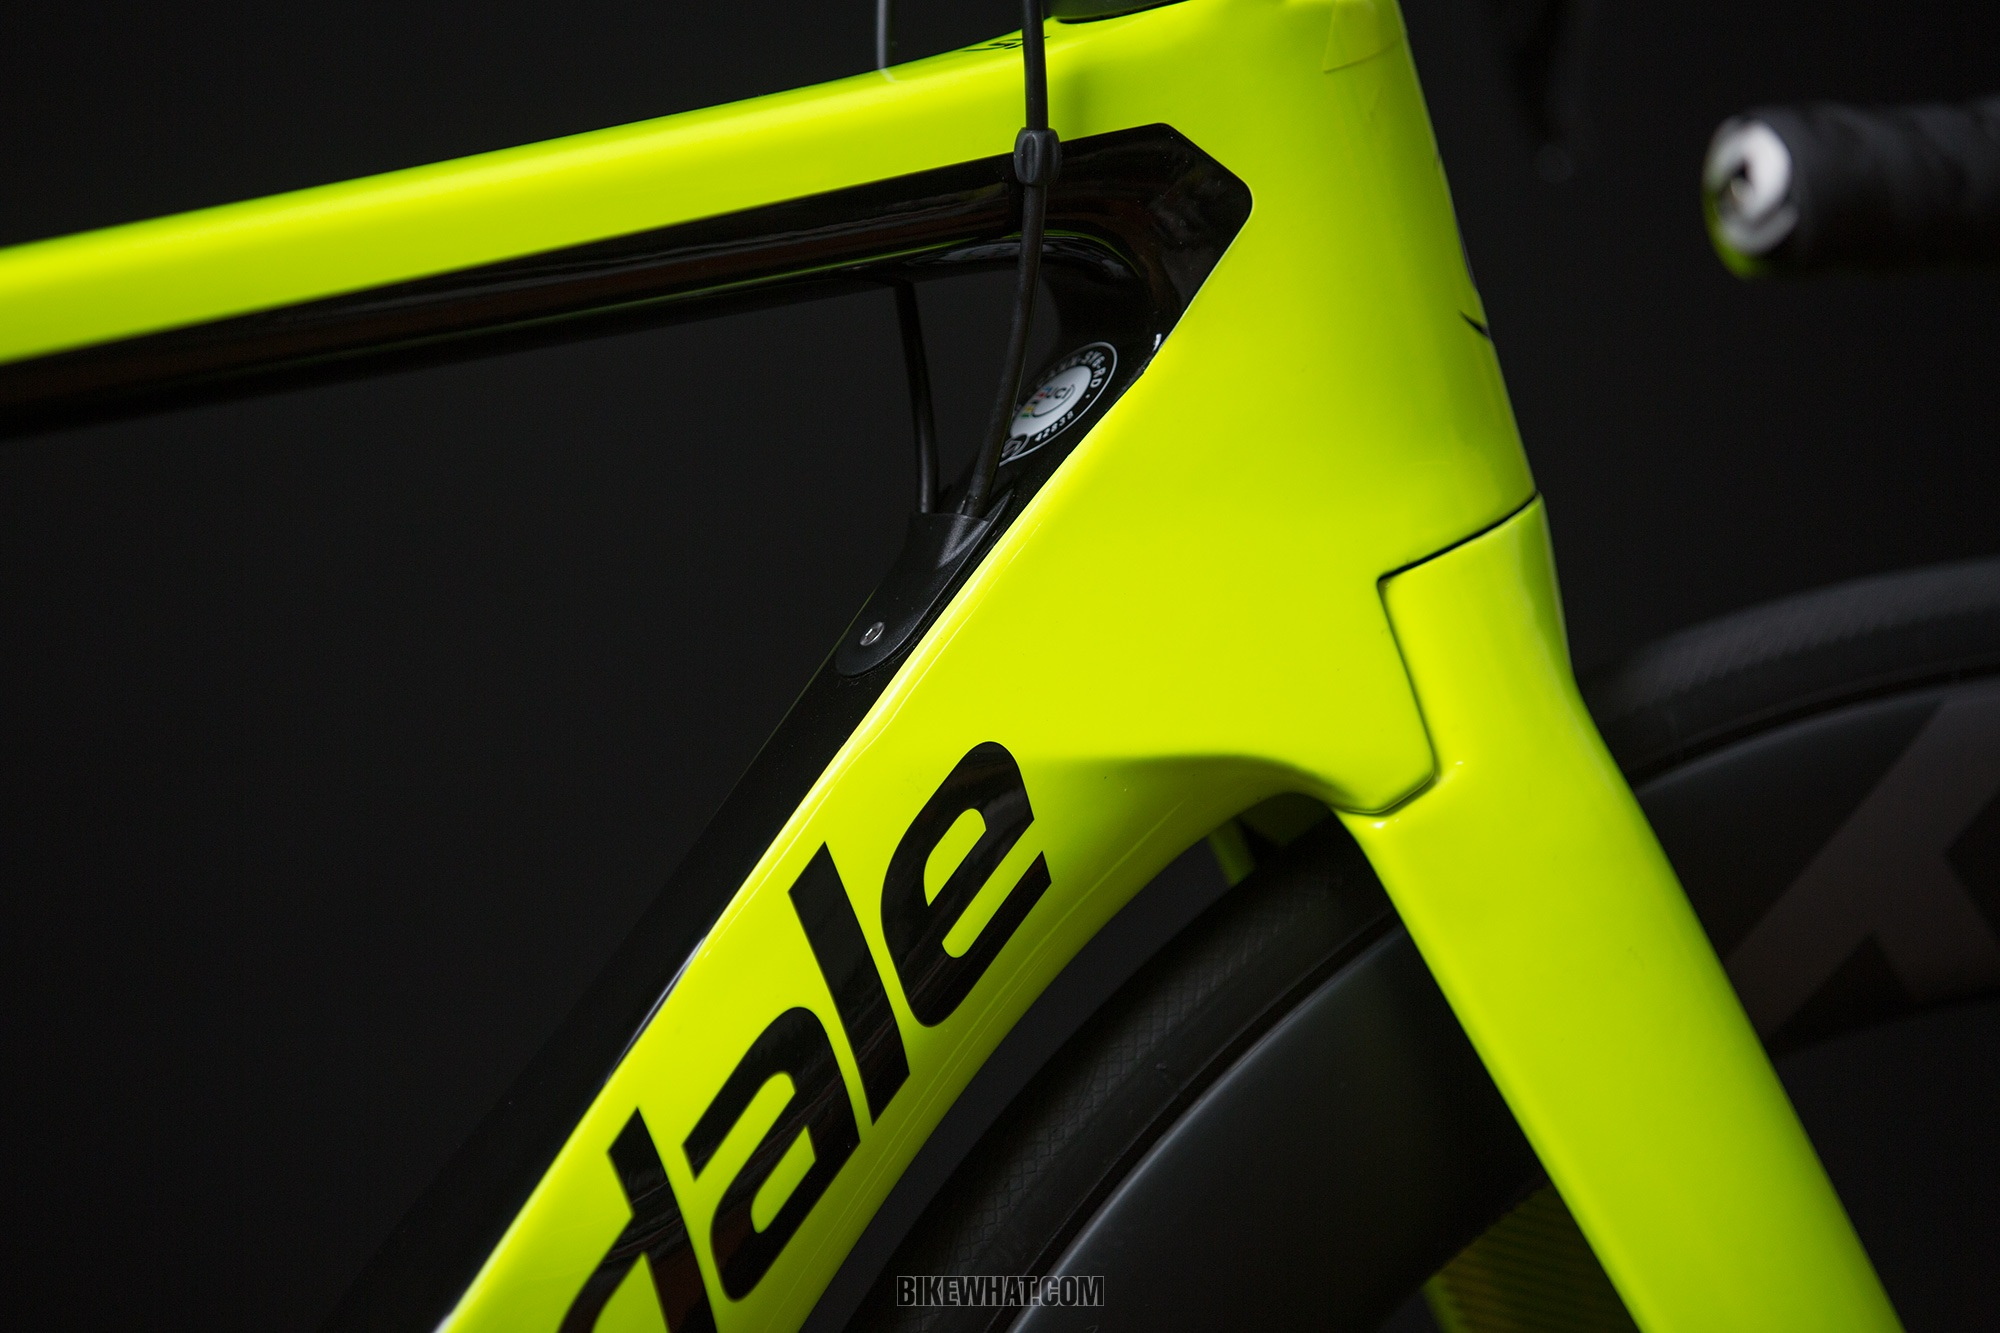 testride_cannondale_systemsix_02.jpg